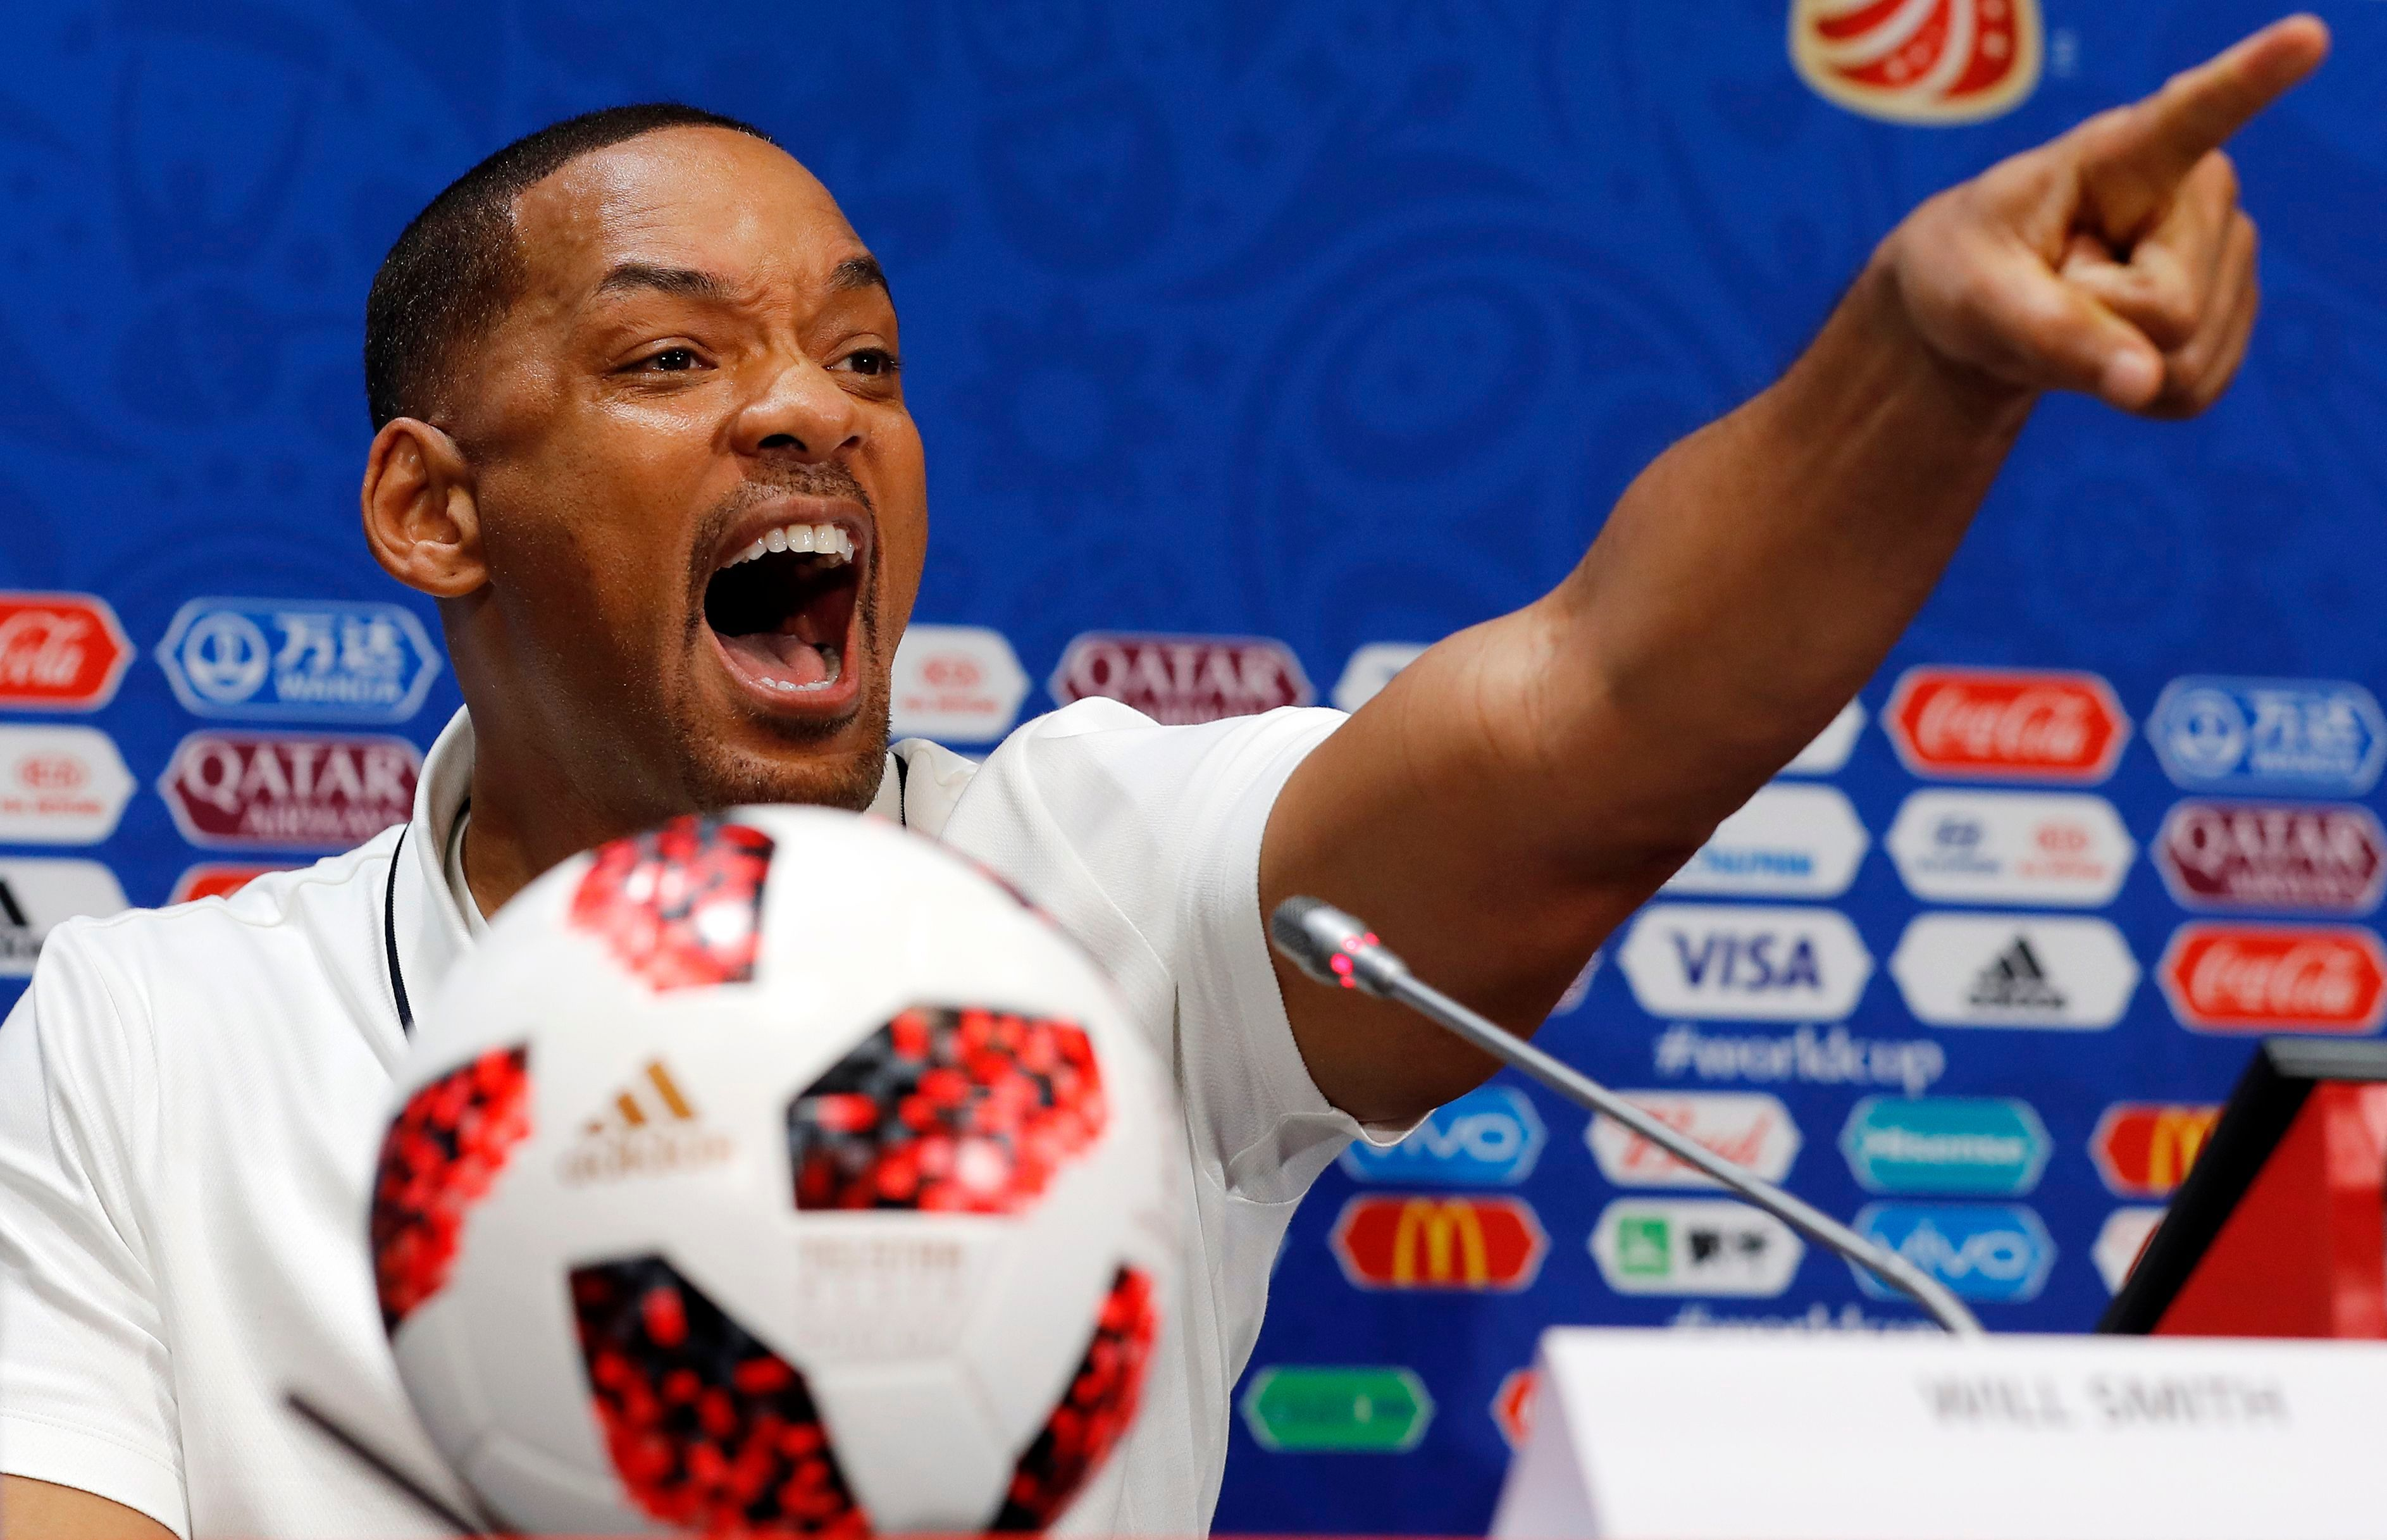 Will Smith attends the FIFA World Cup 2018 closing ceremony press conference in Moscow, Russia, on July 13, 2018.